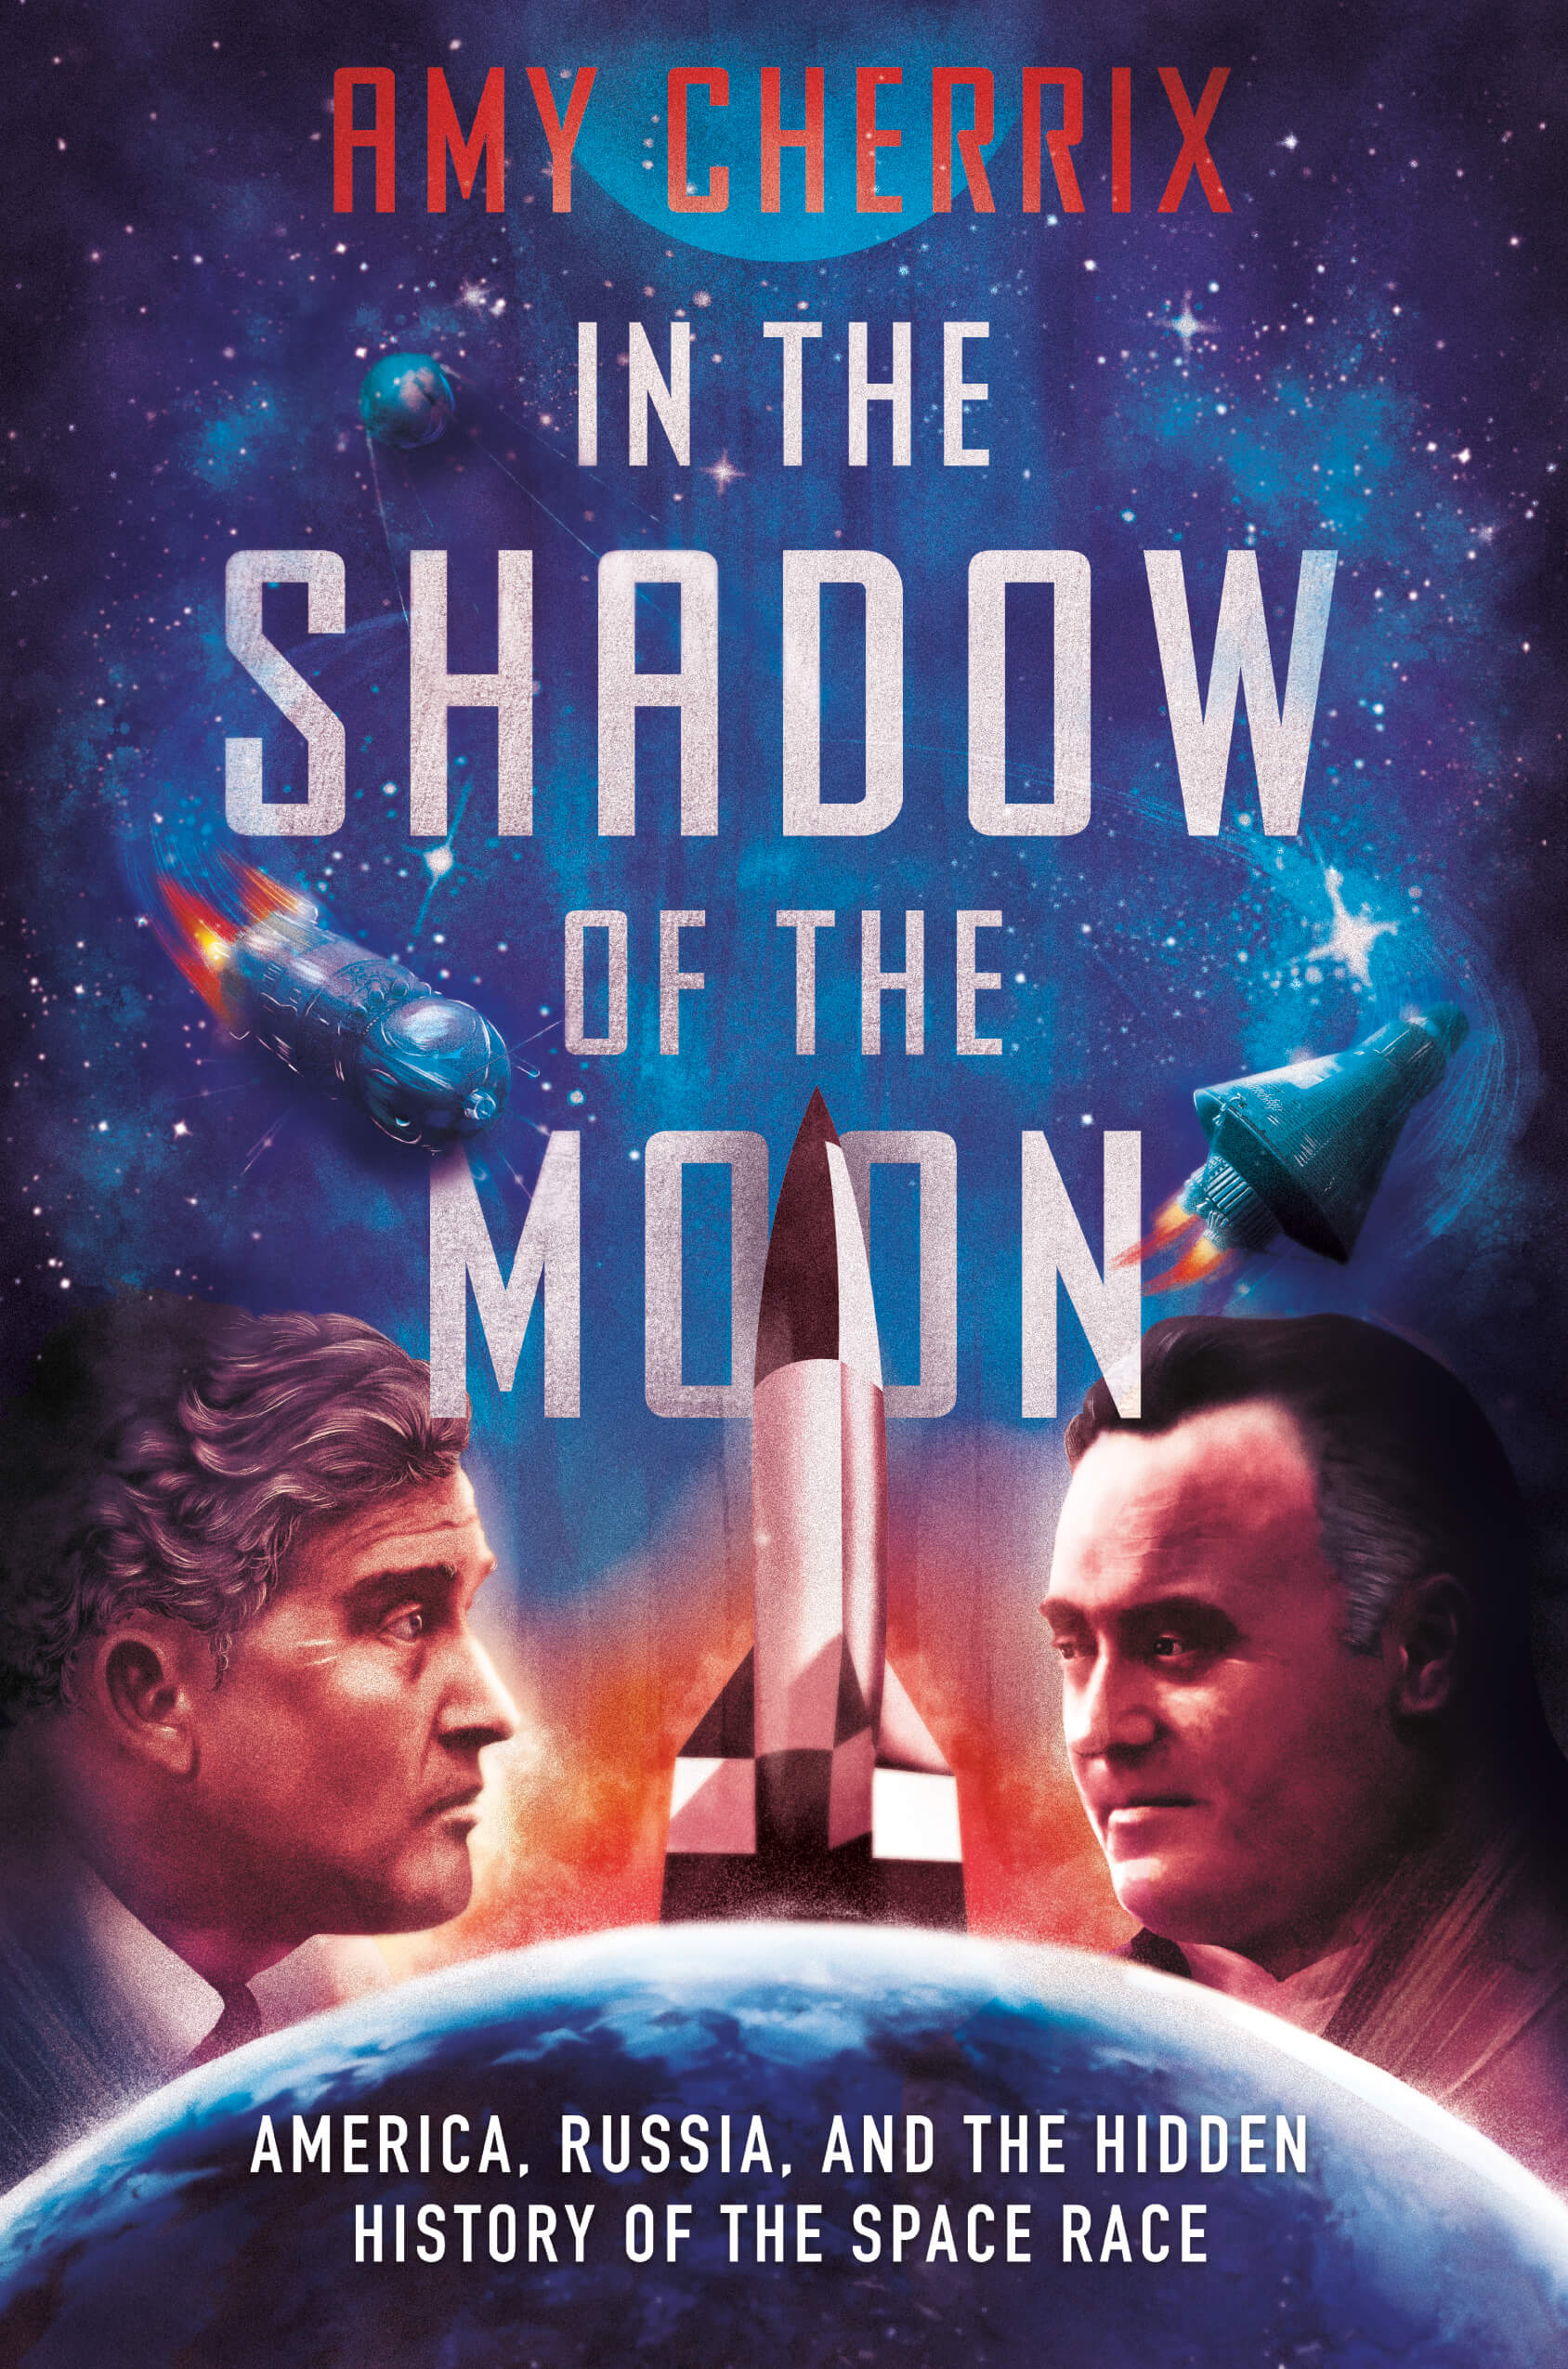 In the Shadow of the Moon: America, Russia, and the Hidden History of the Space Race